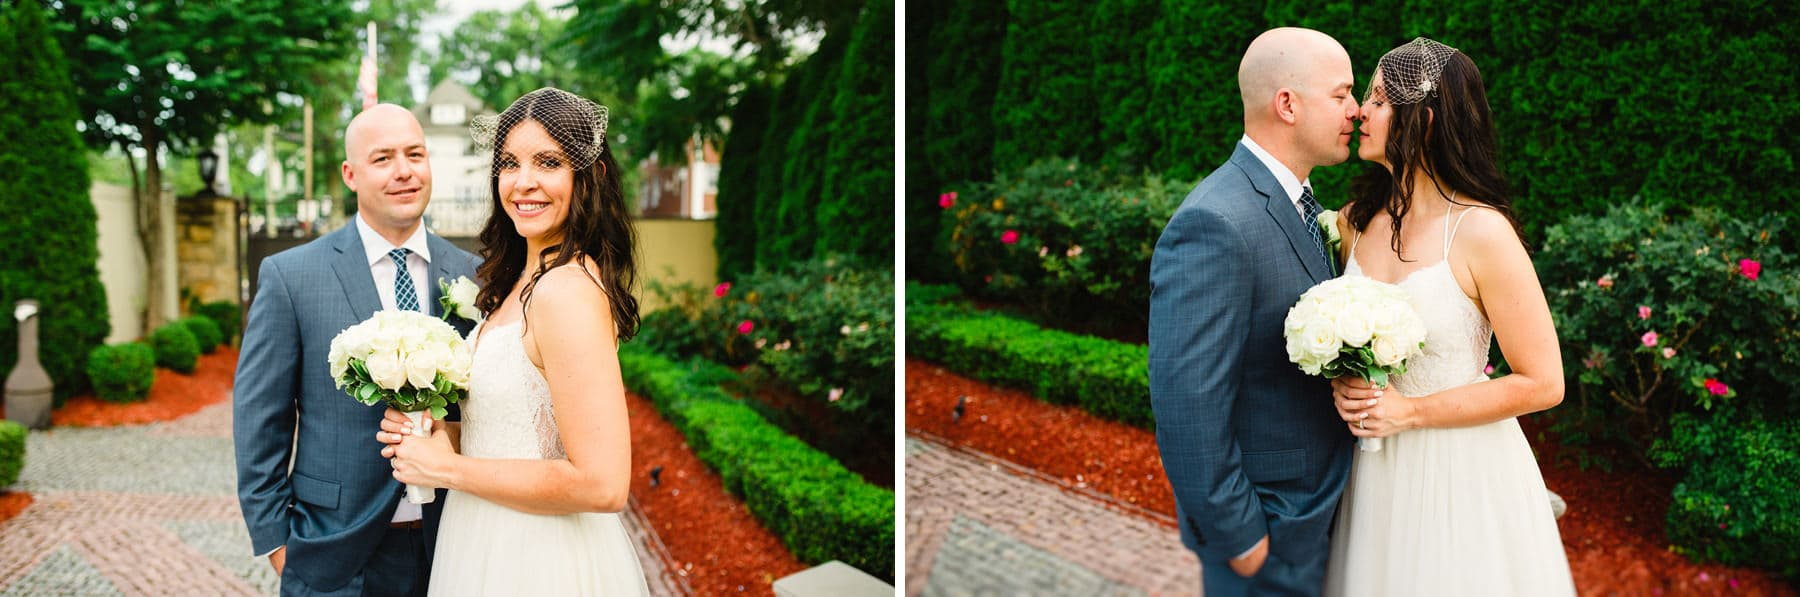 Roselle Park Wedding Photographer